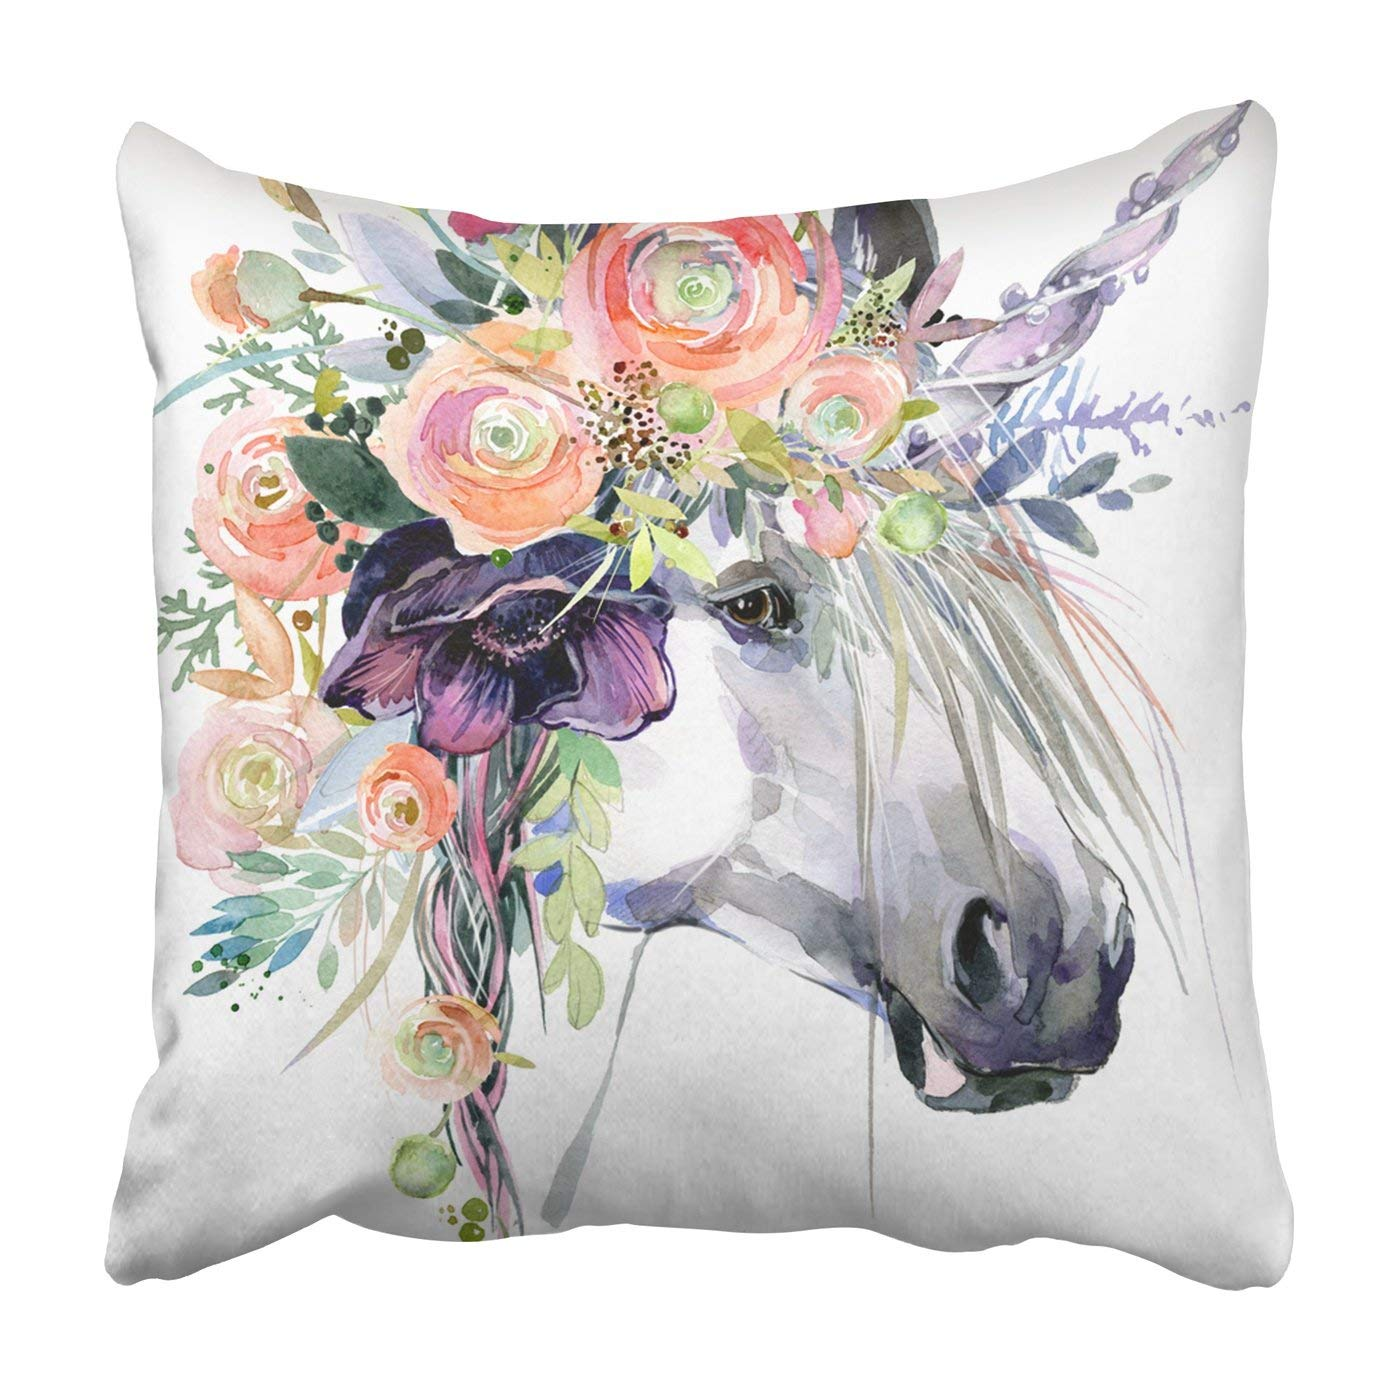 WOPOP watercolor unicorn White horse in flower wreath Pillowcase Throw Pillow Cover Case 18x18 inches